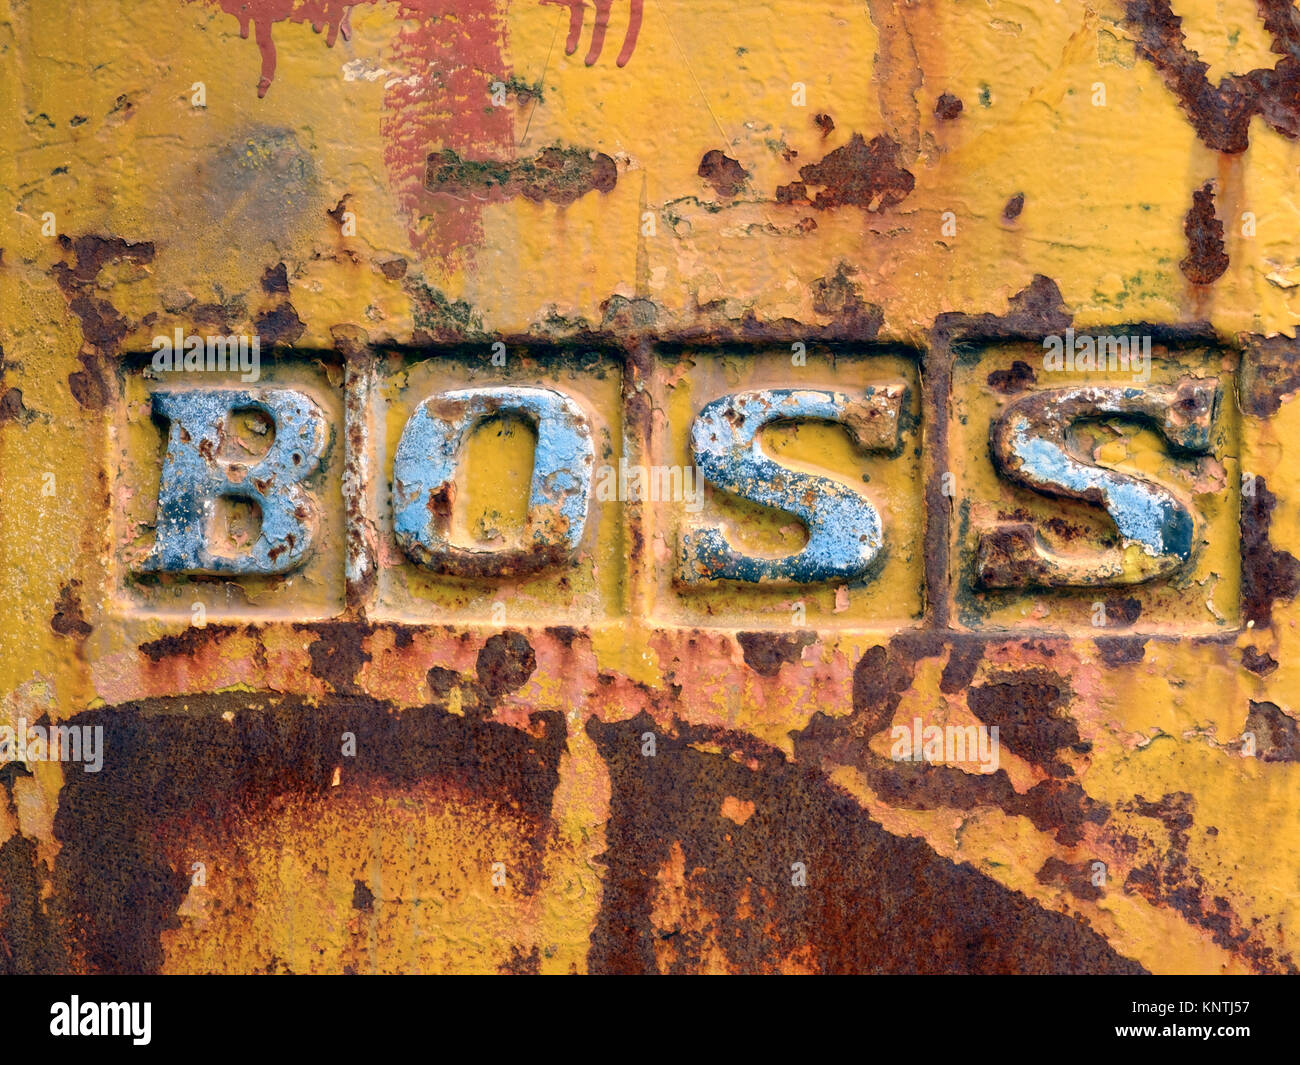 Rusty oil drum with uppercase letters. - Stock Image